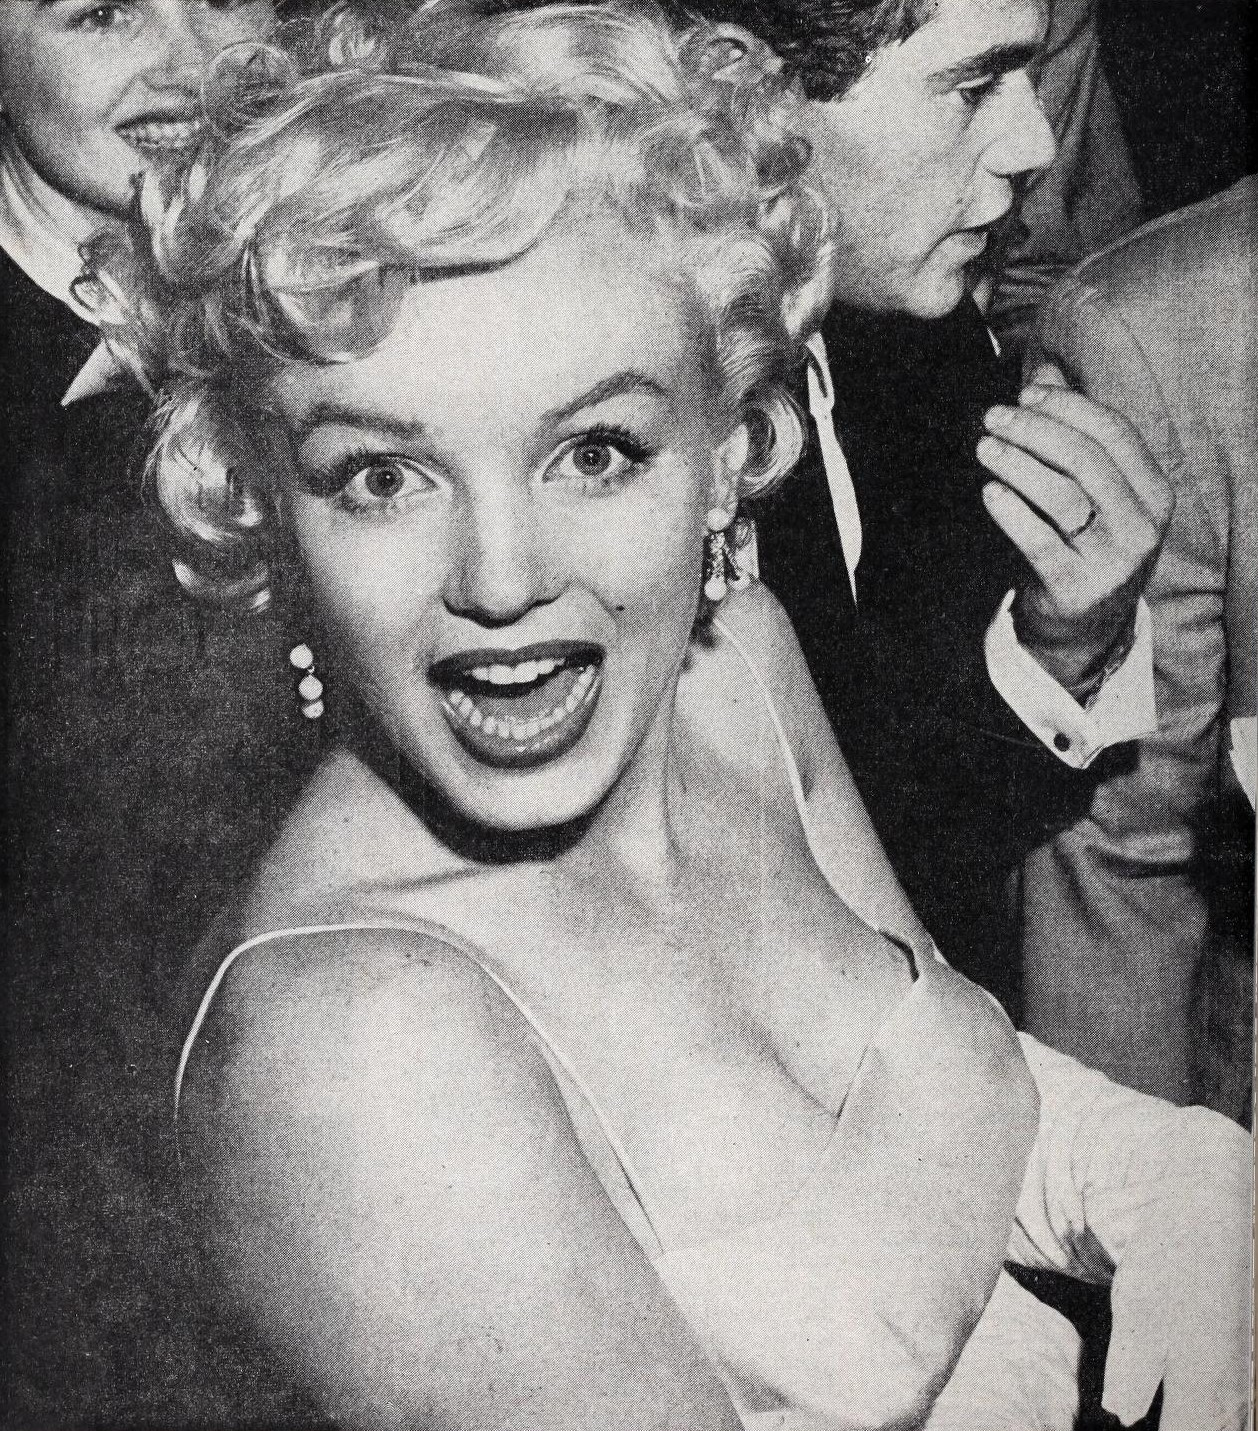 File:Marilyn Monroe at a party, 1955.jpg - Wikimedia Commons